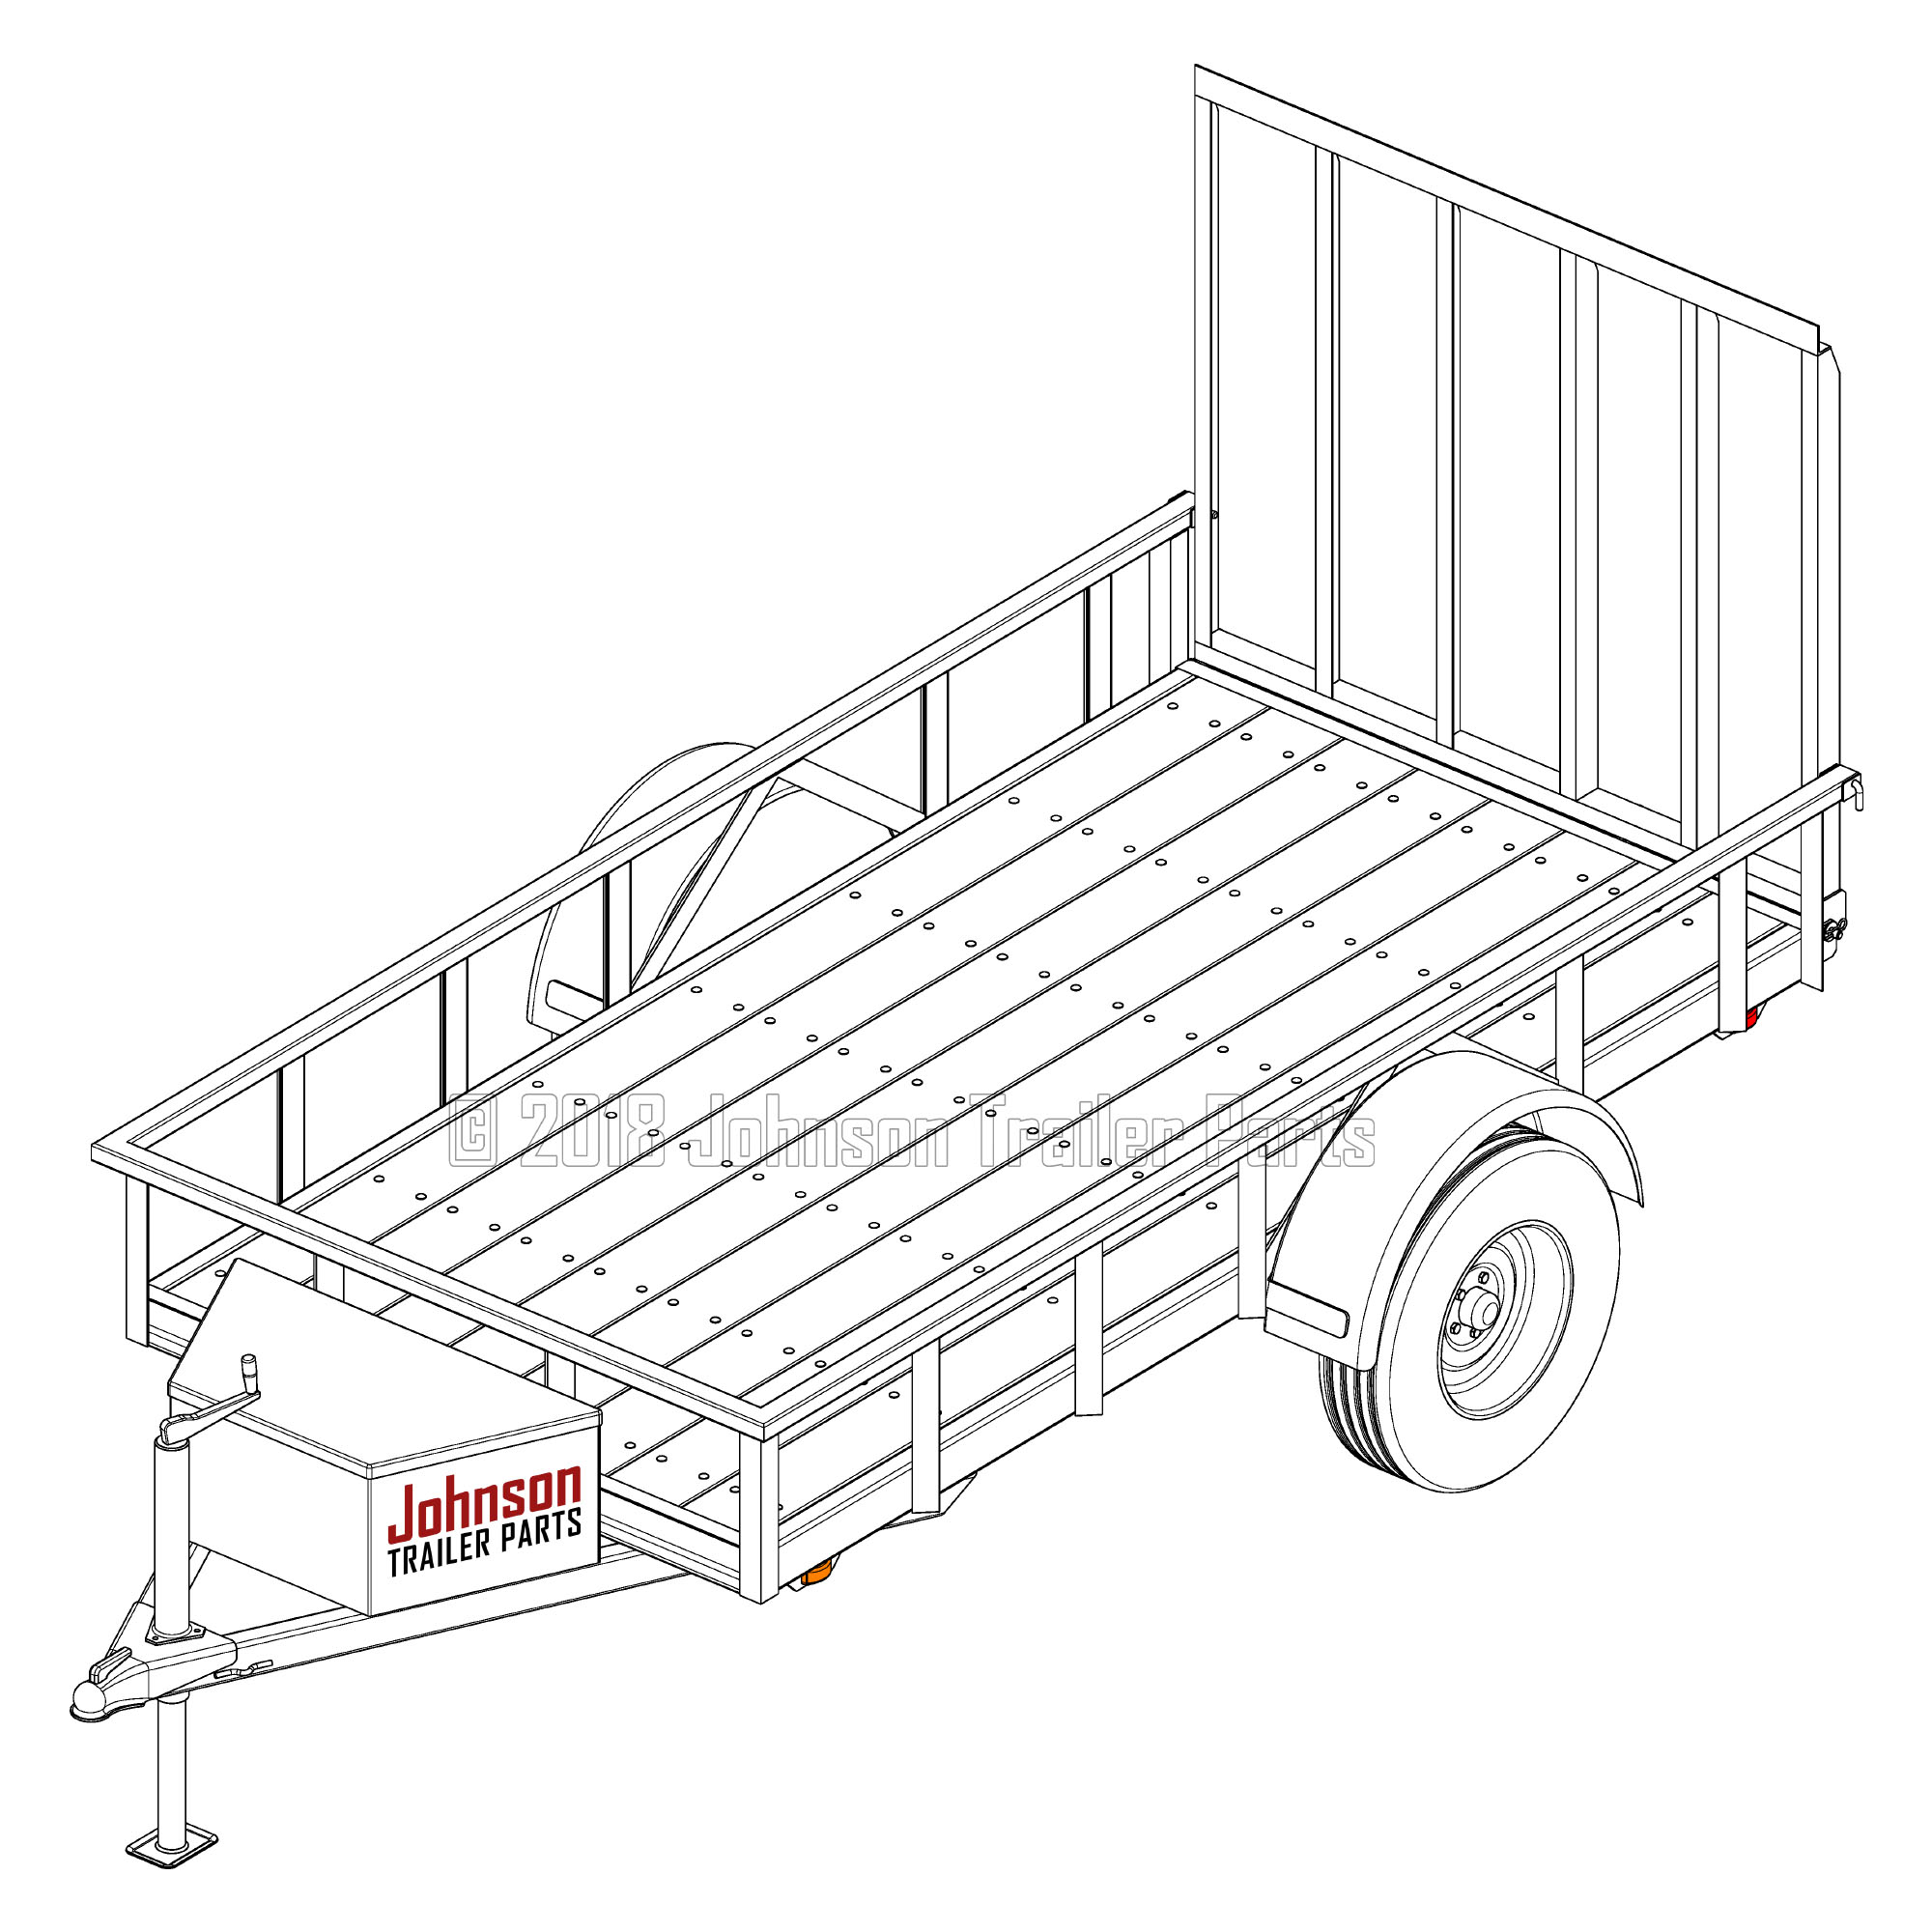 Downloadable Pdf Engineered Trailer Plans Blueprints Step By Wiring Diagrams For Trailers Tilt Car Hauler Instructions